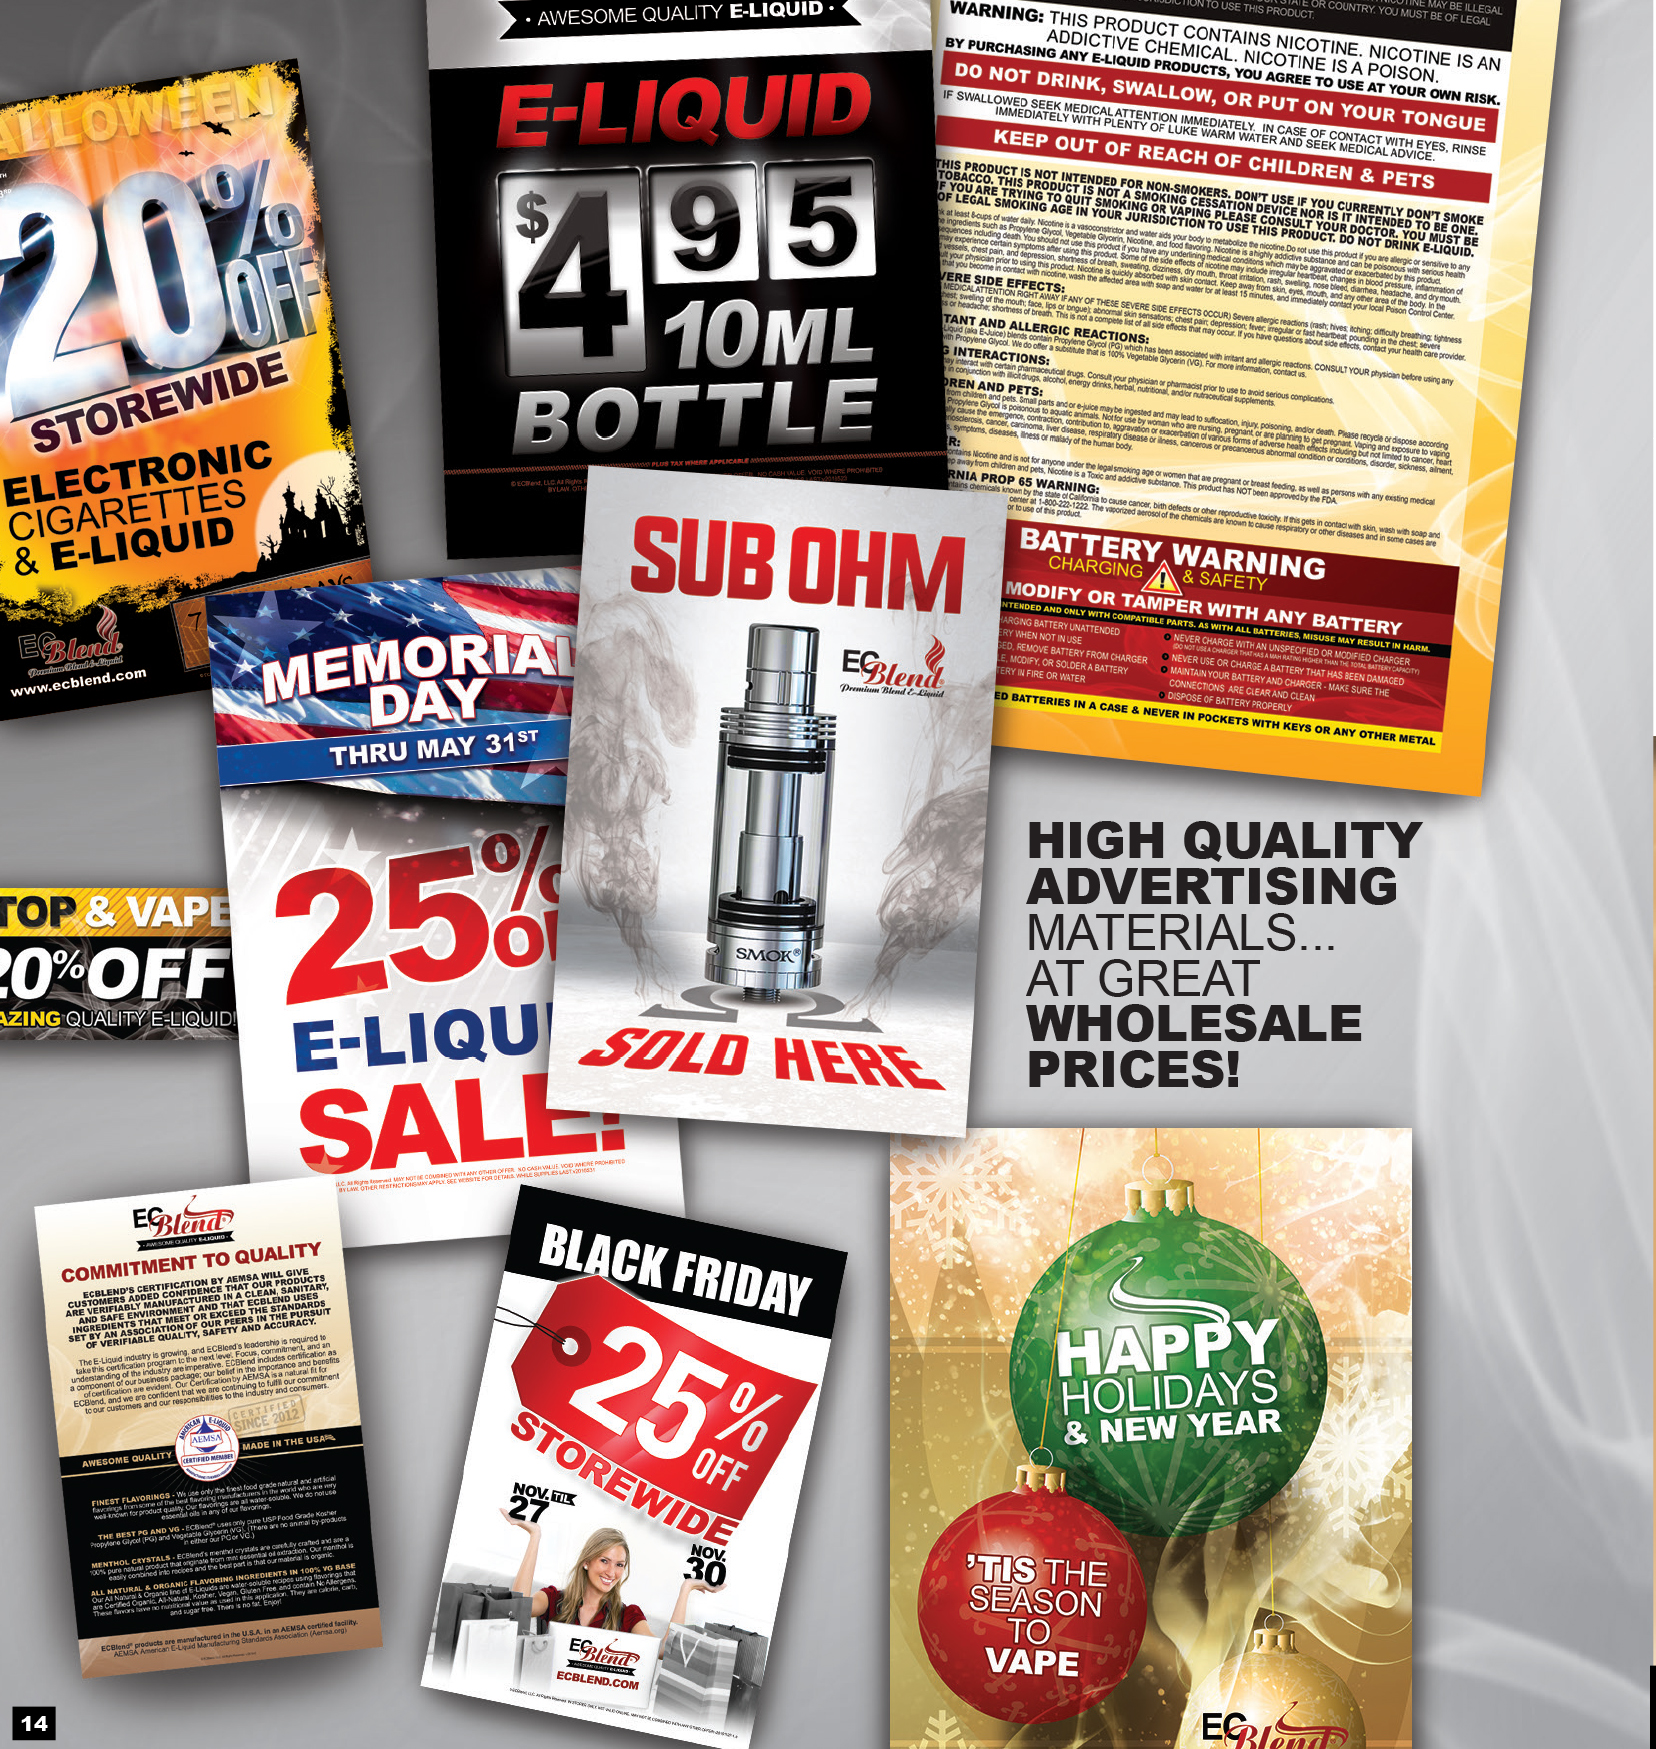 Advertising made easy! MAKES YOUR IN-STORE ADVERTISING LOOK AMAZING!